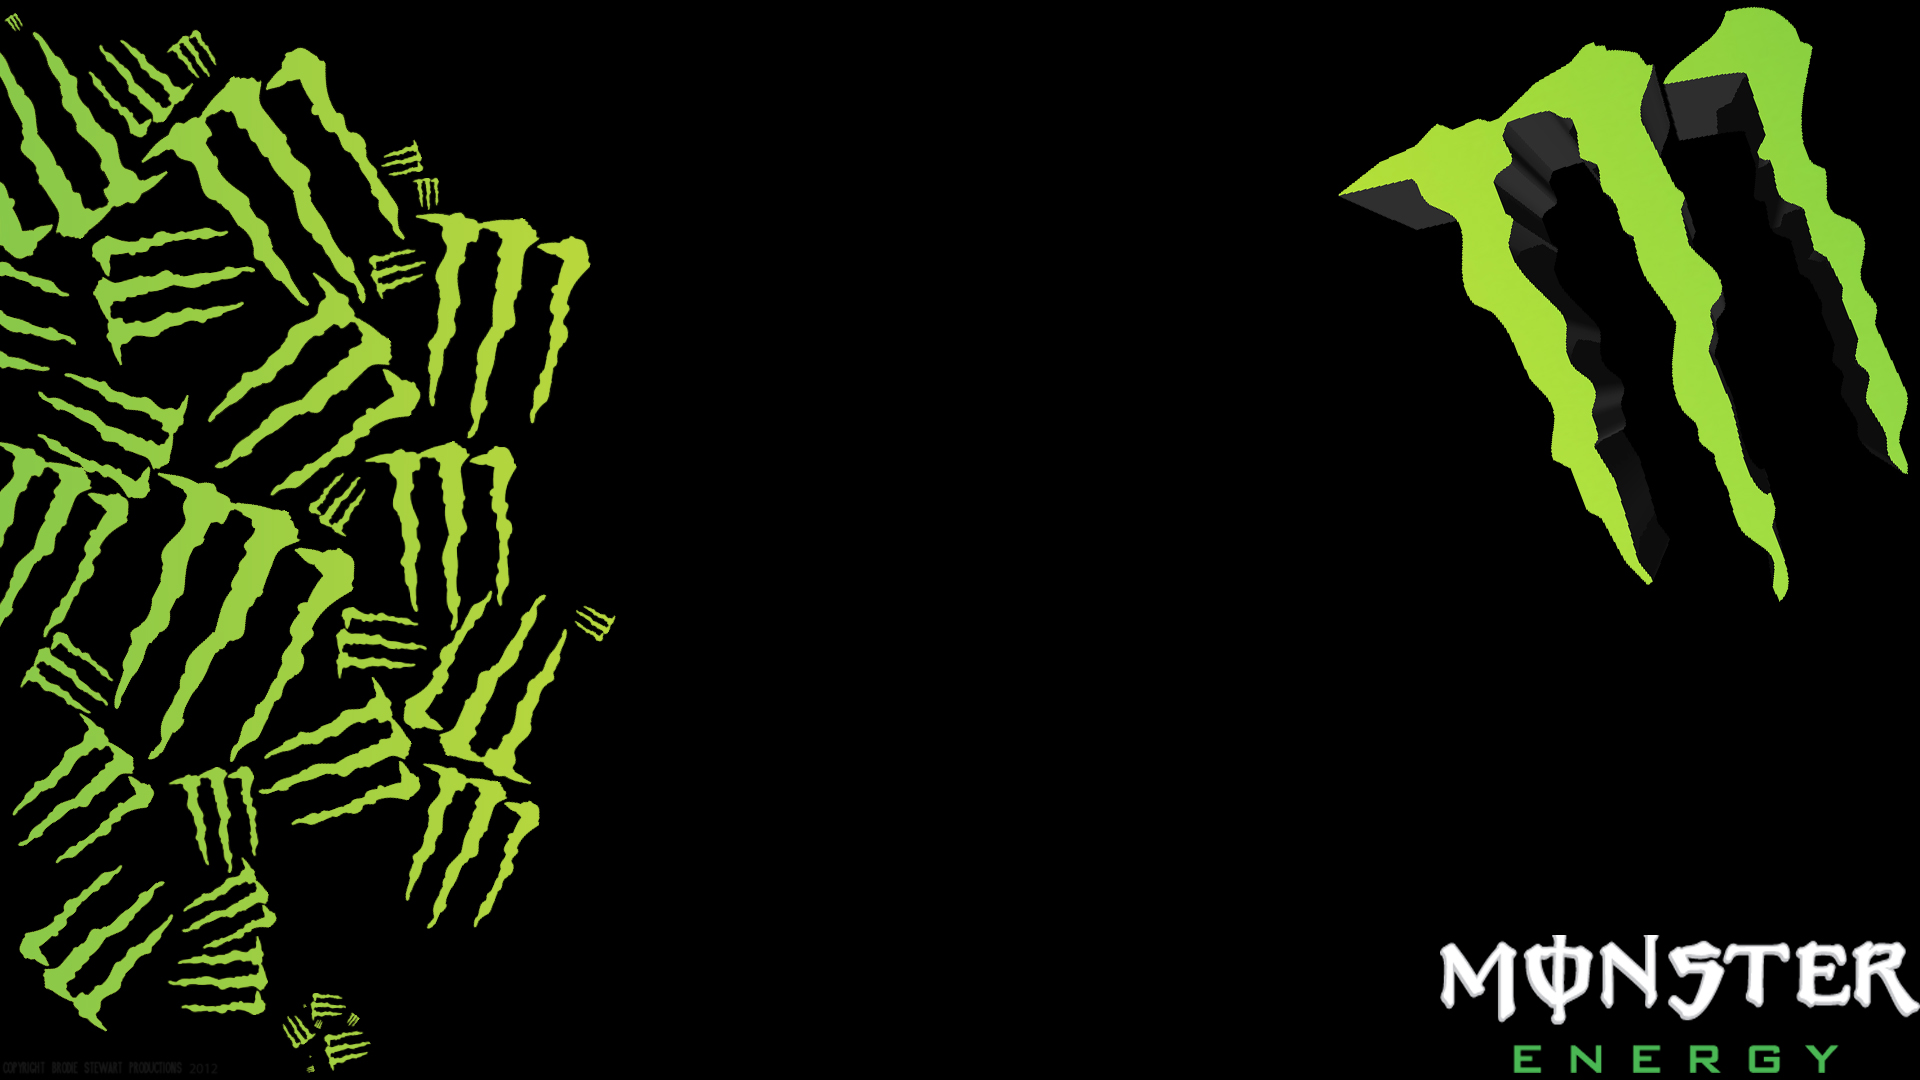 blue monster energy logo wallpaper wallpapersafari